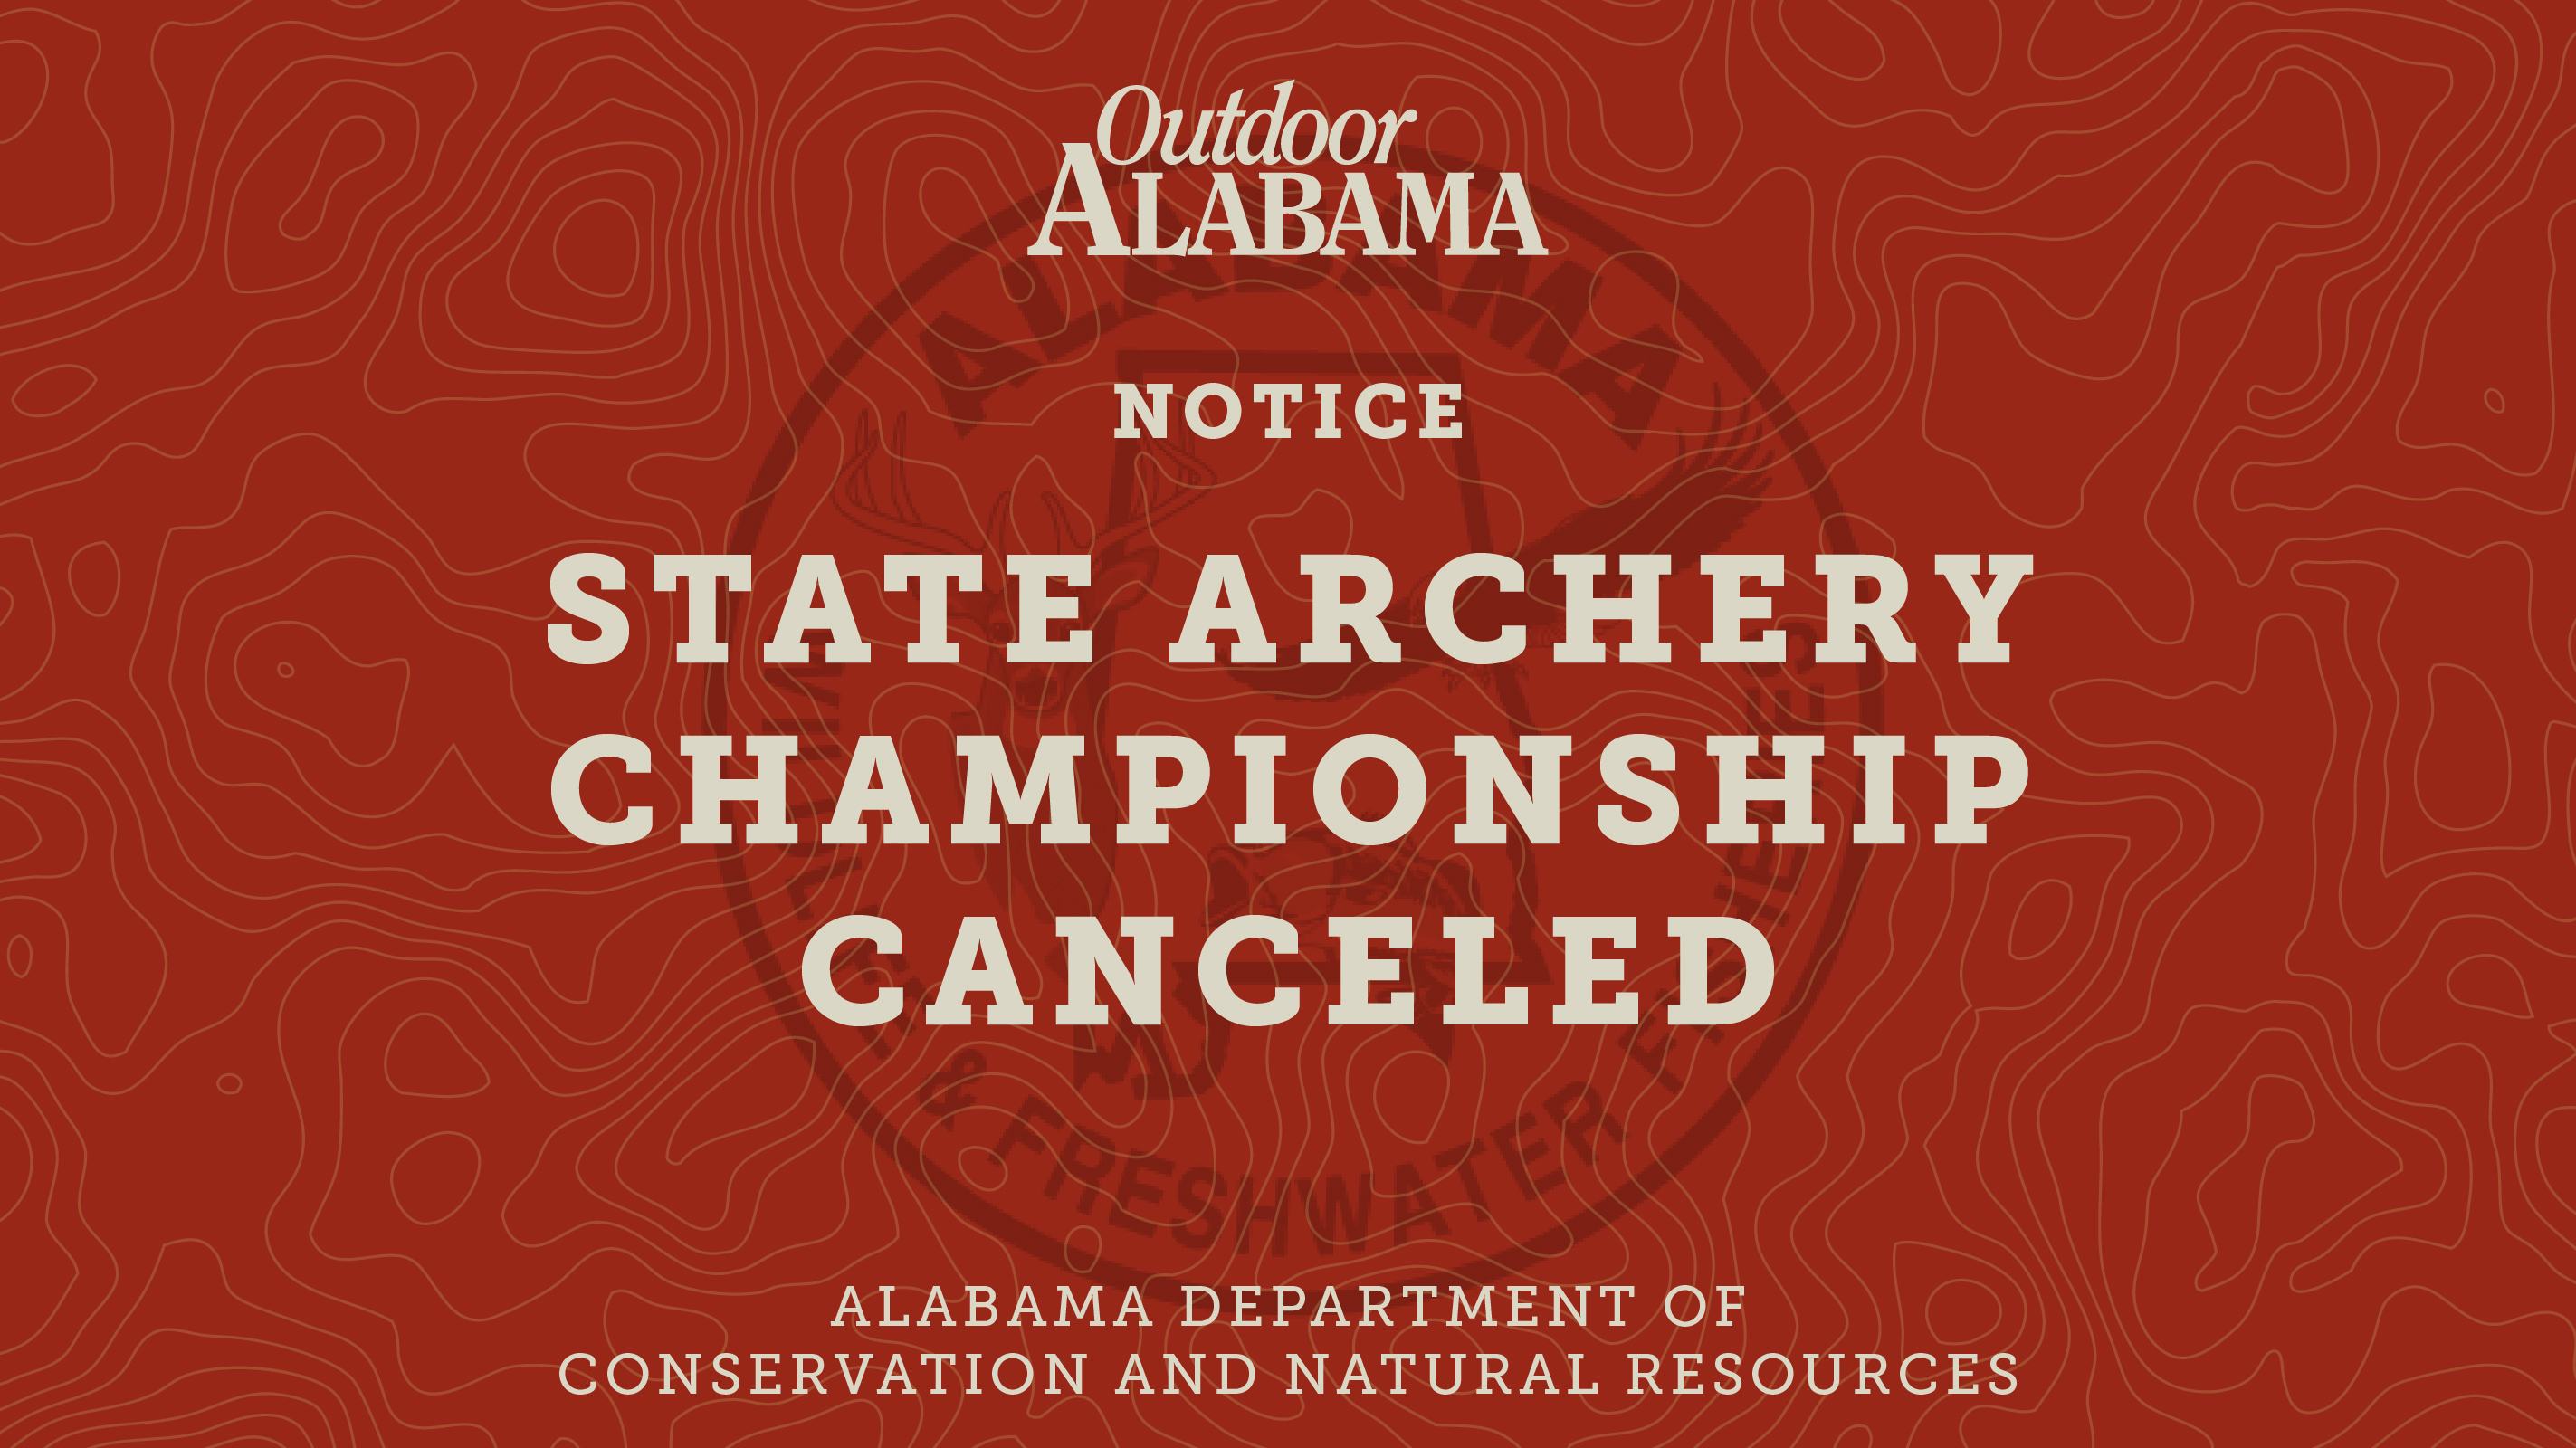 State Archery Championship Canceled